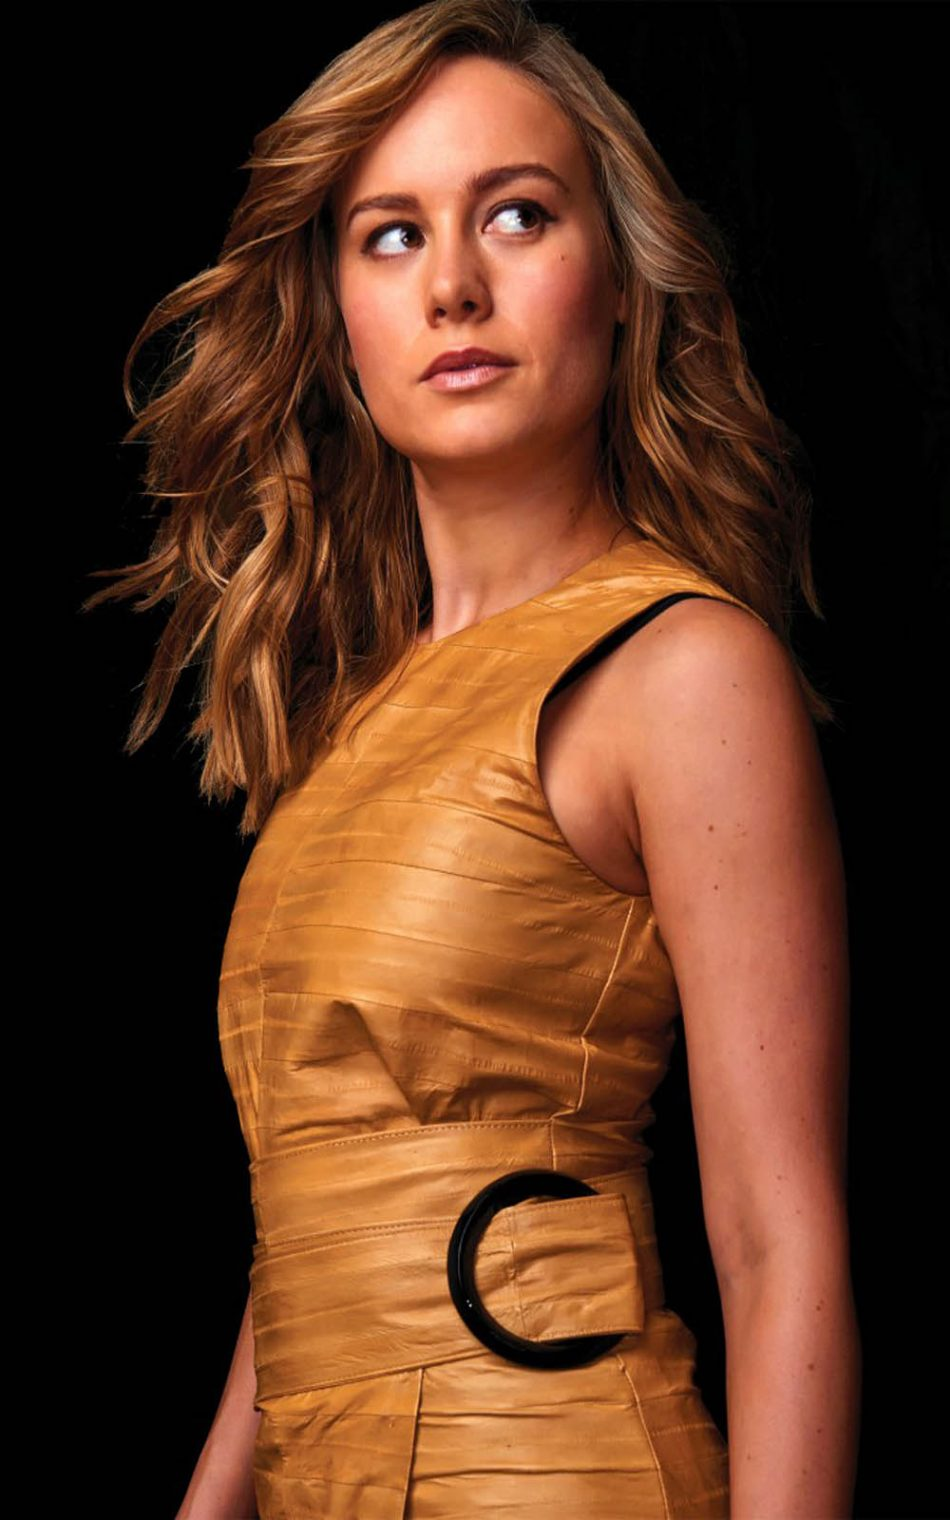 Download Brie Larson Pure 4K Ultra HD Mobile Wallpaper 950x1520